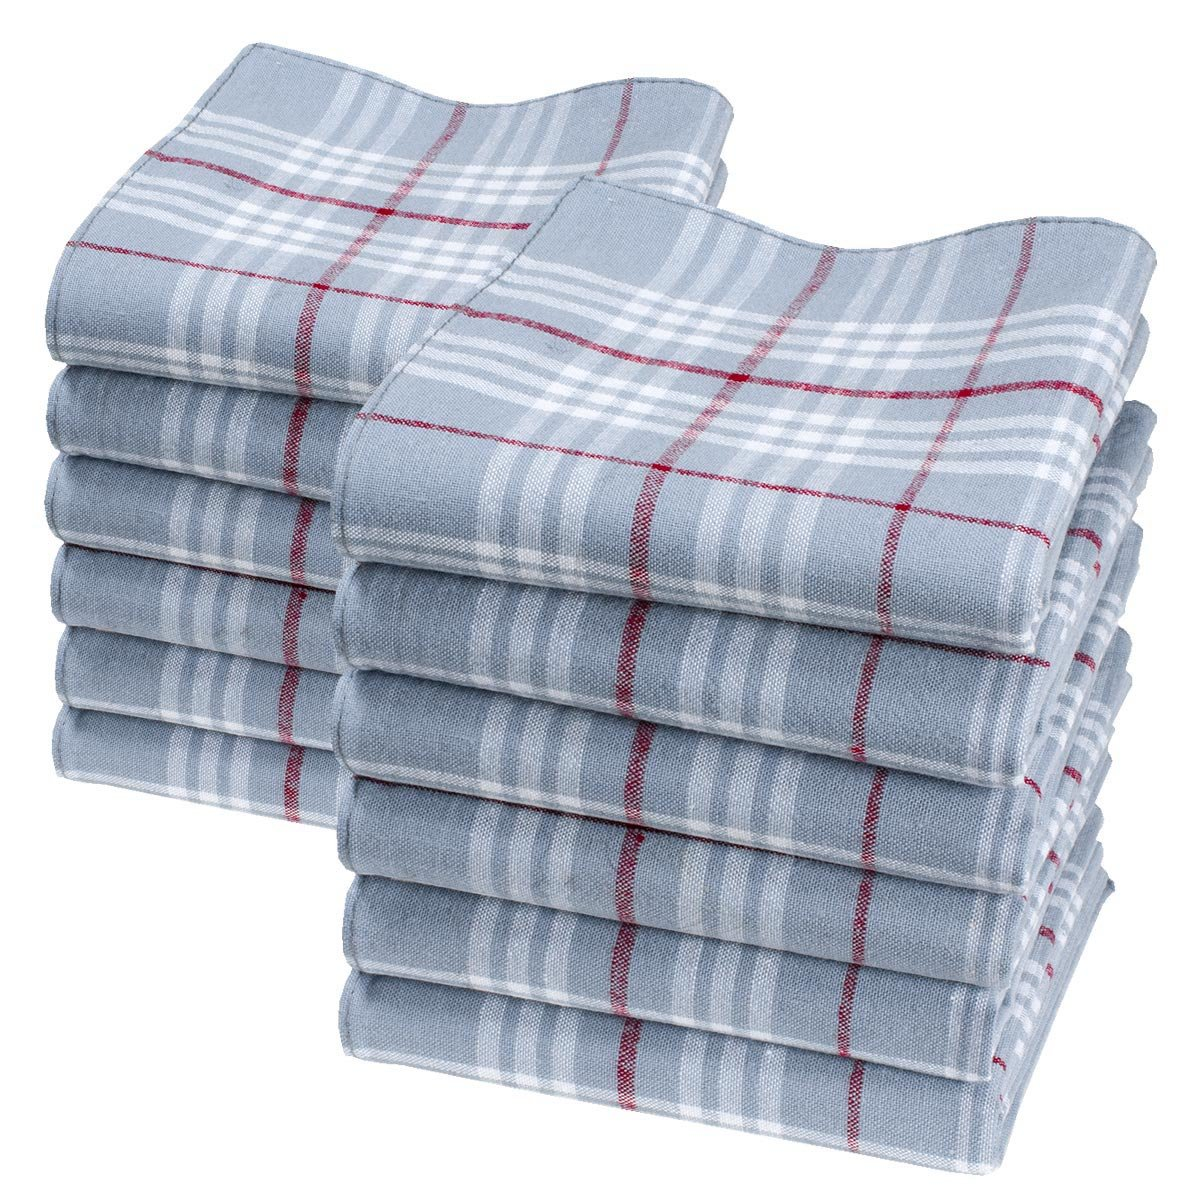 'Arnold' big and thick worker's handkerchiefs - 18 square - 6 units Merrysquare